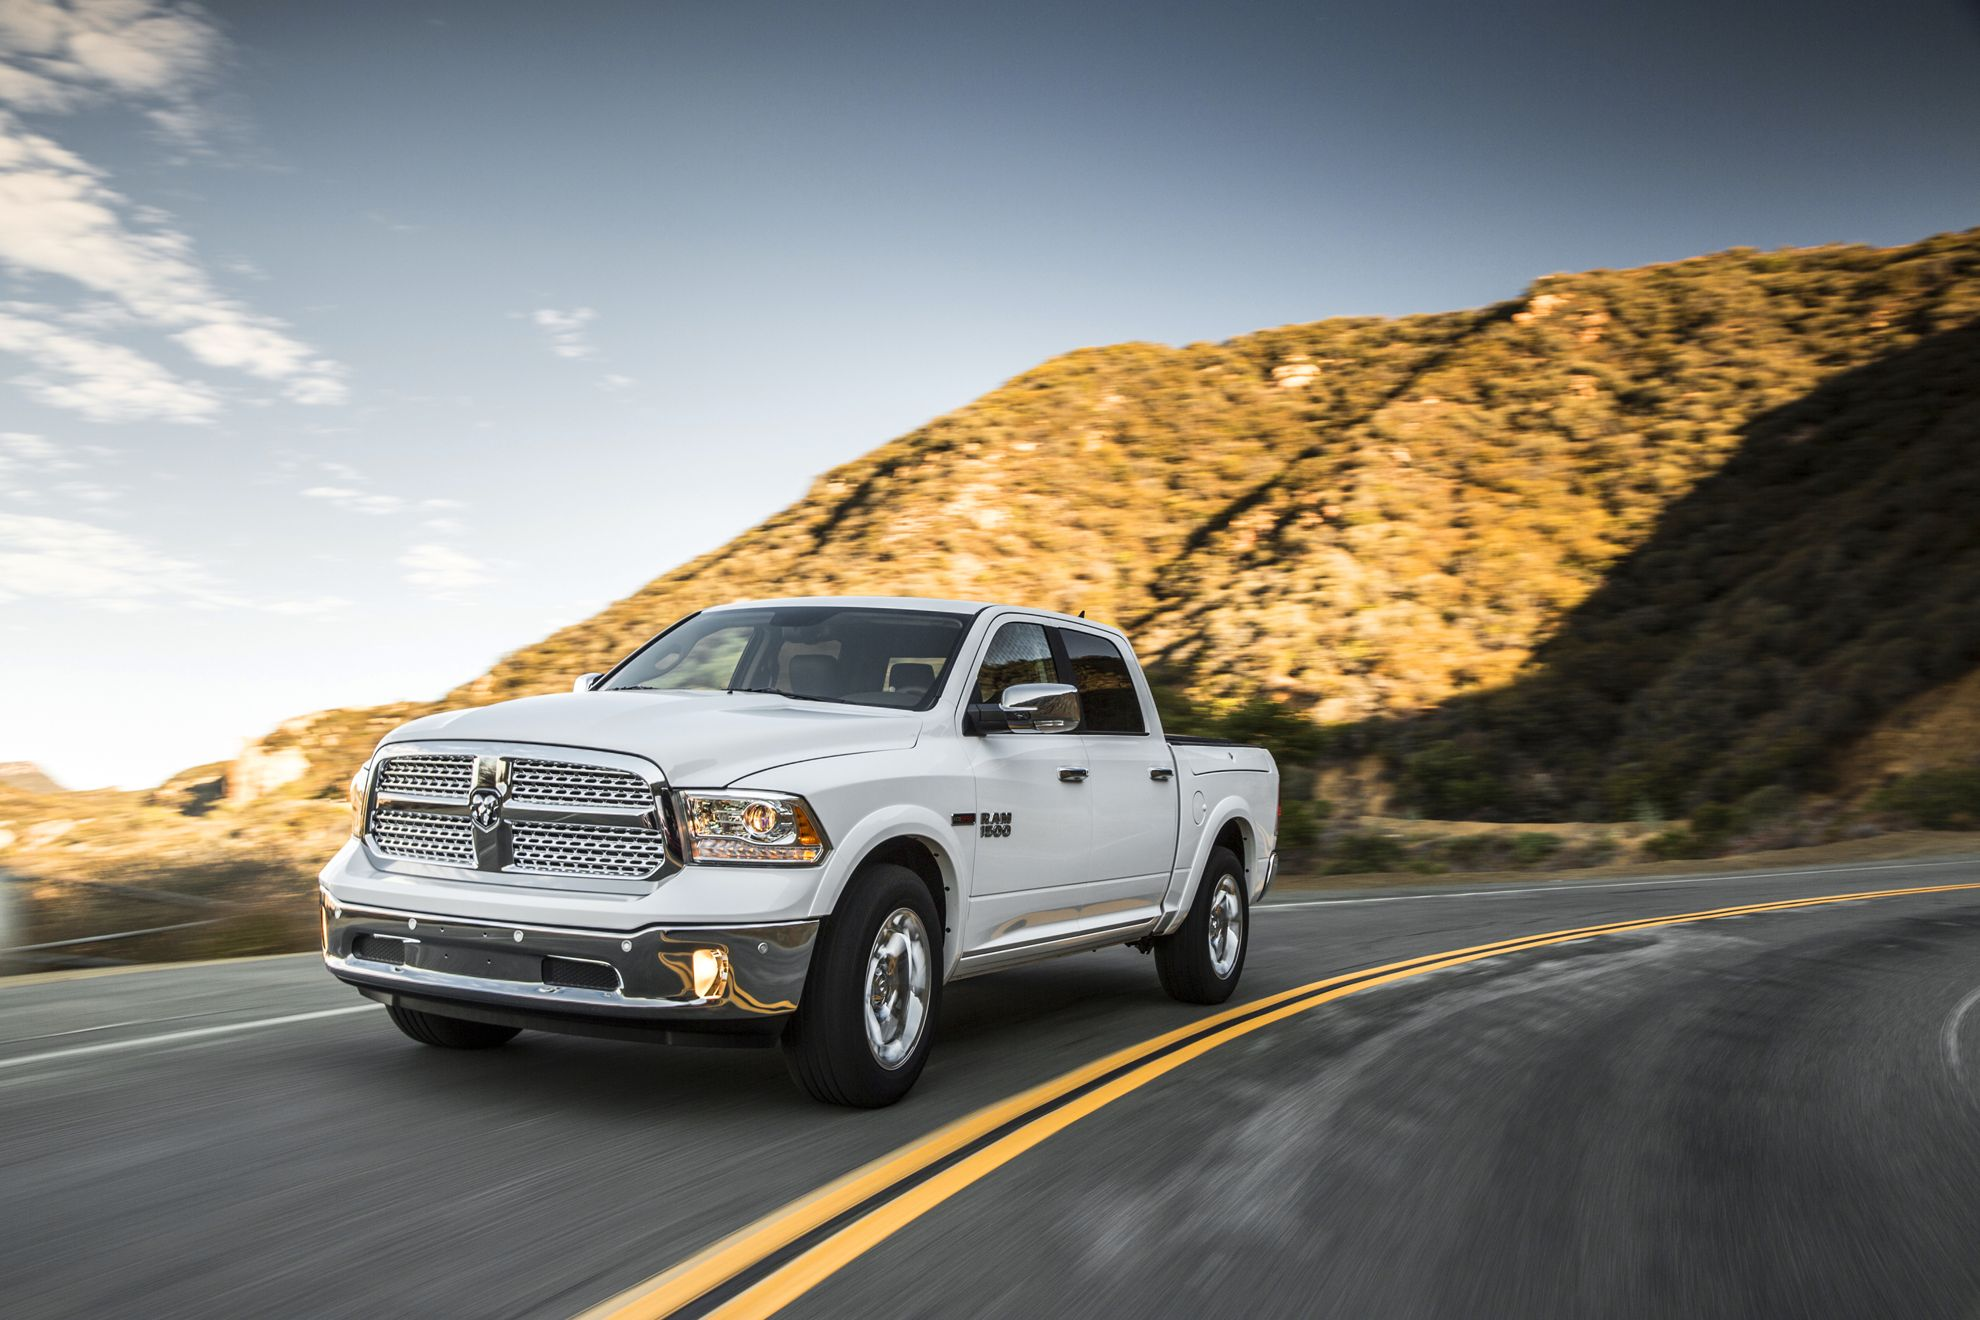 dodge ram 1500 ecodiesel sets new fuel economy benchmark of 28 mpg. Cars Review. Best American Auto & Cars Review